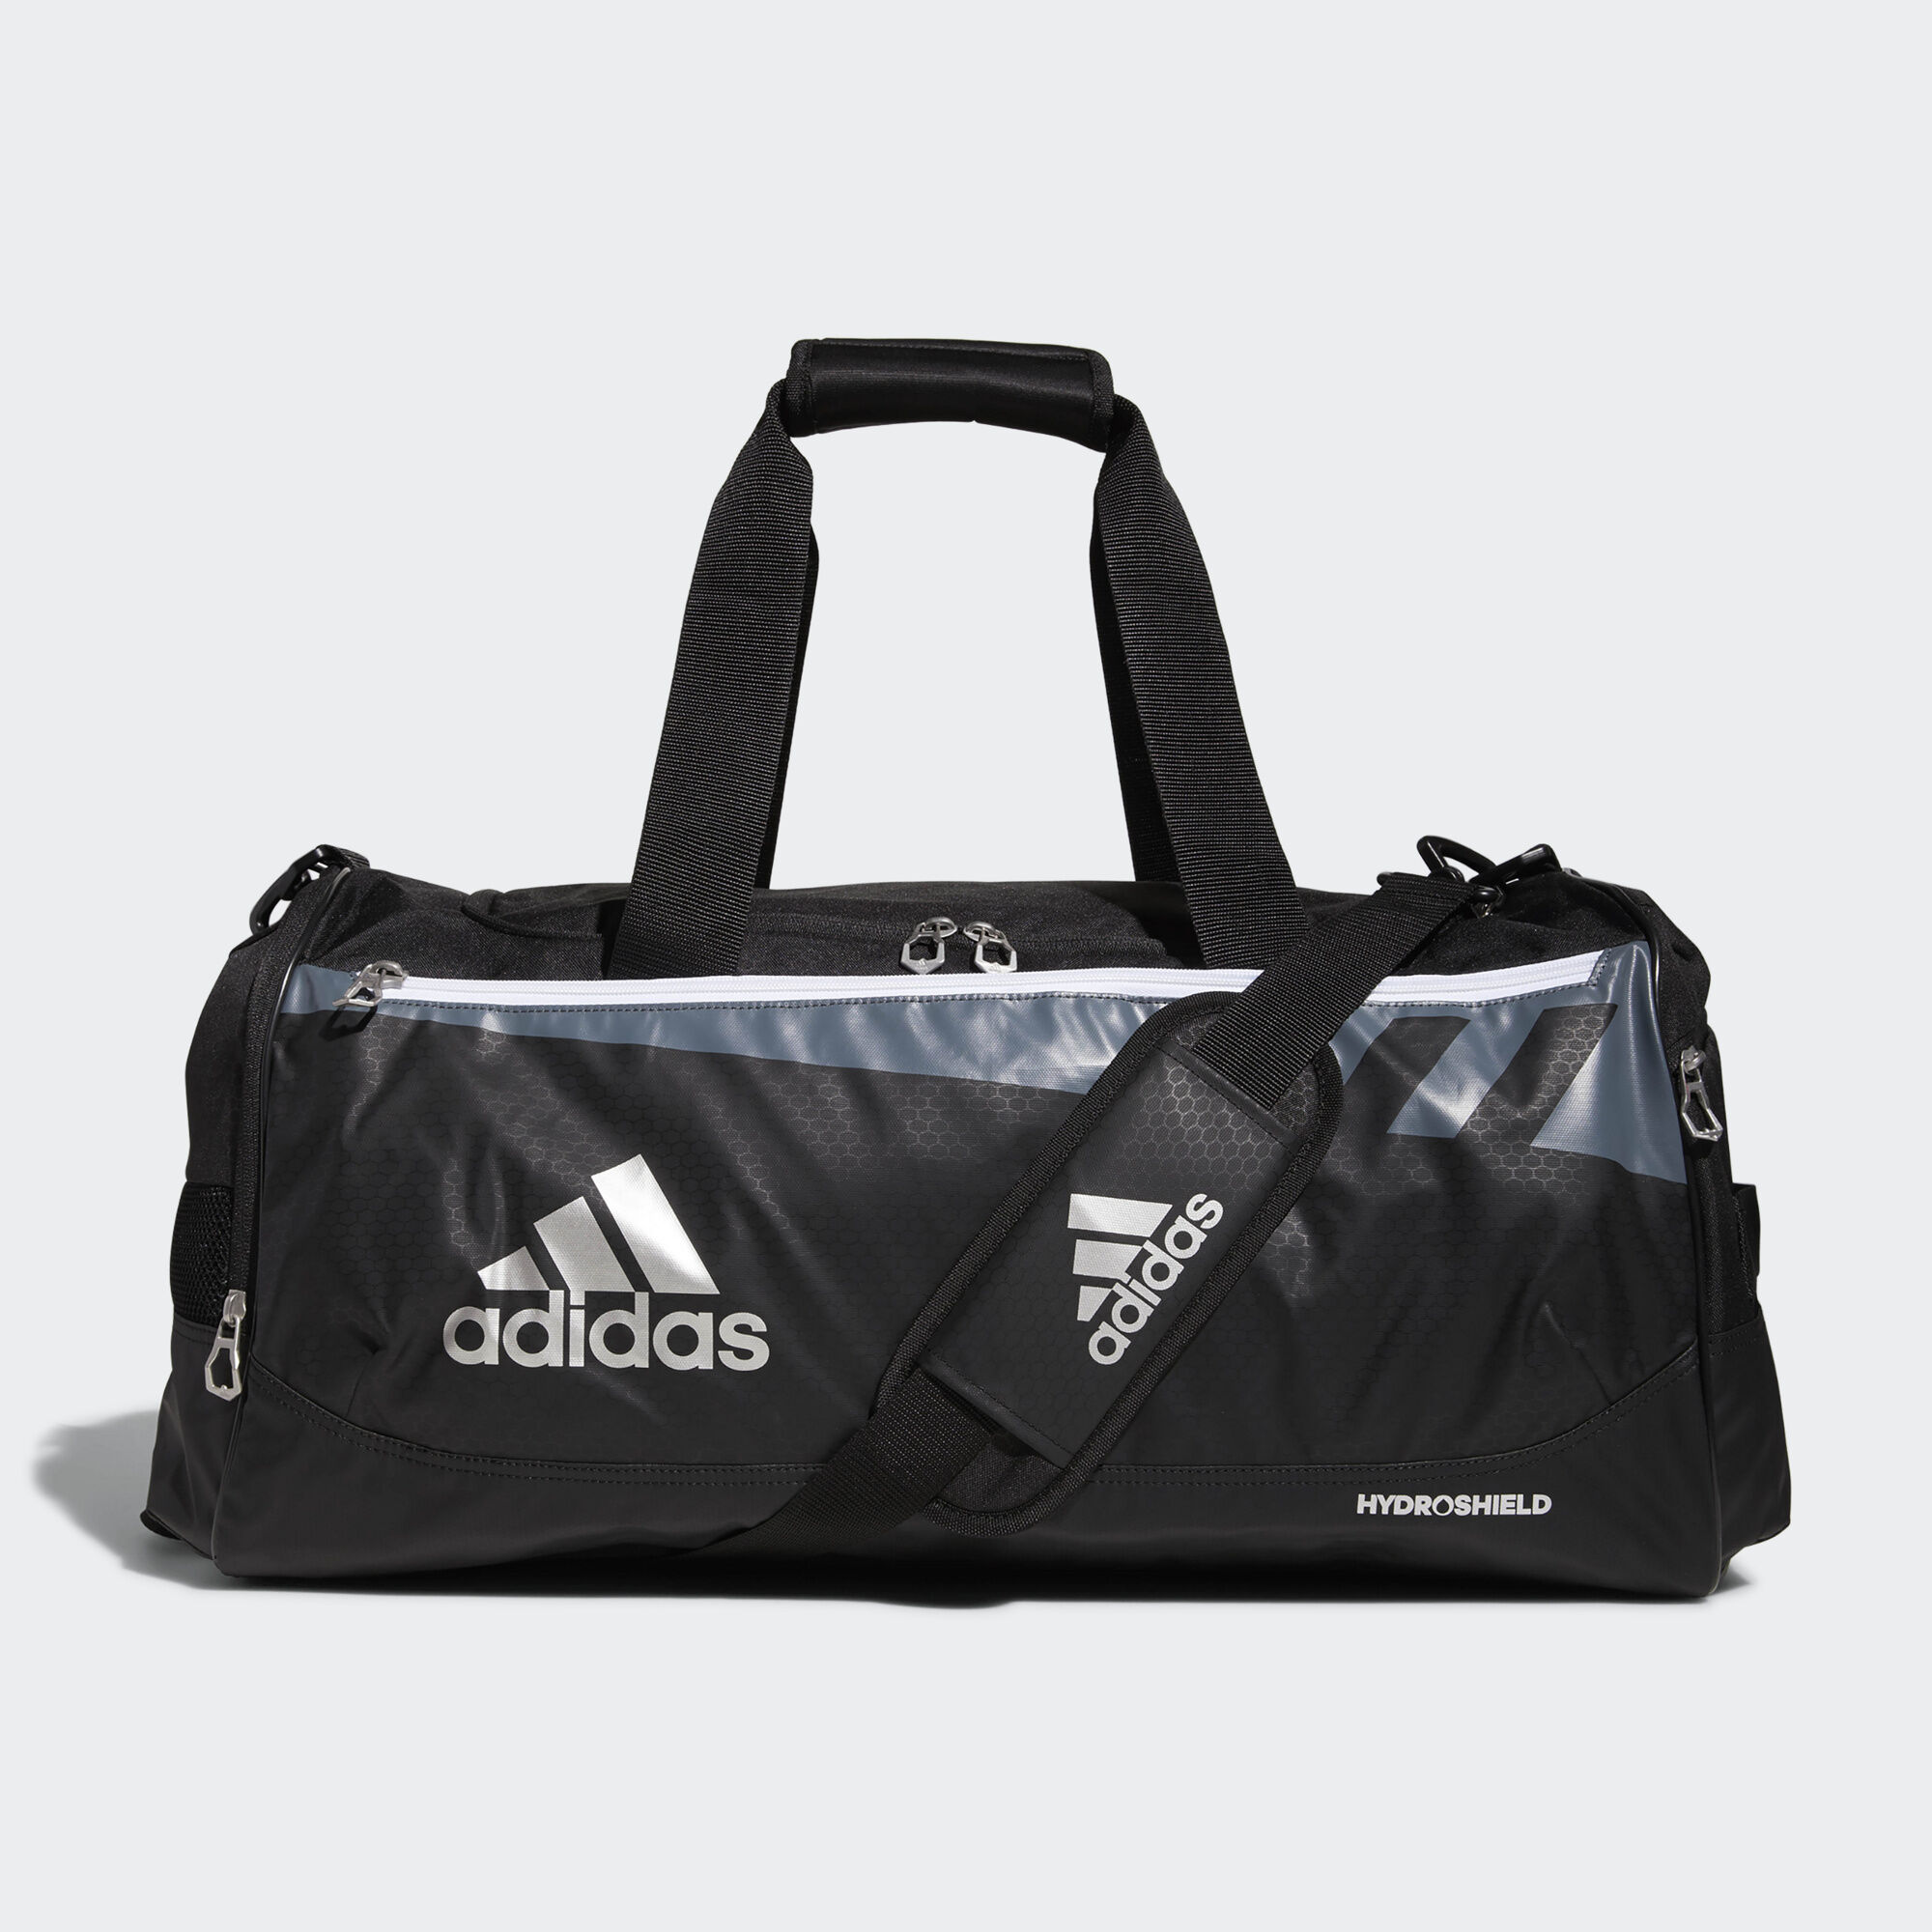 fcfe080ee0 adidas gold bag